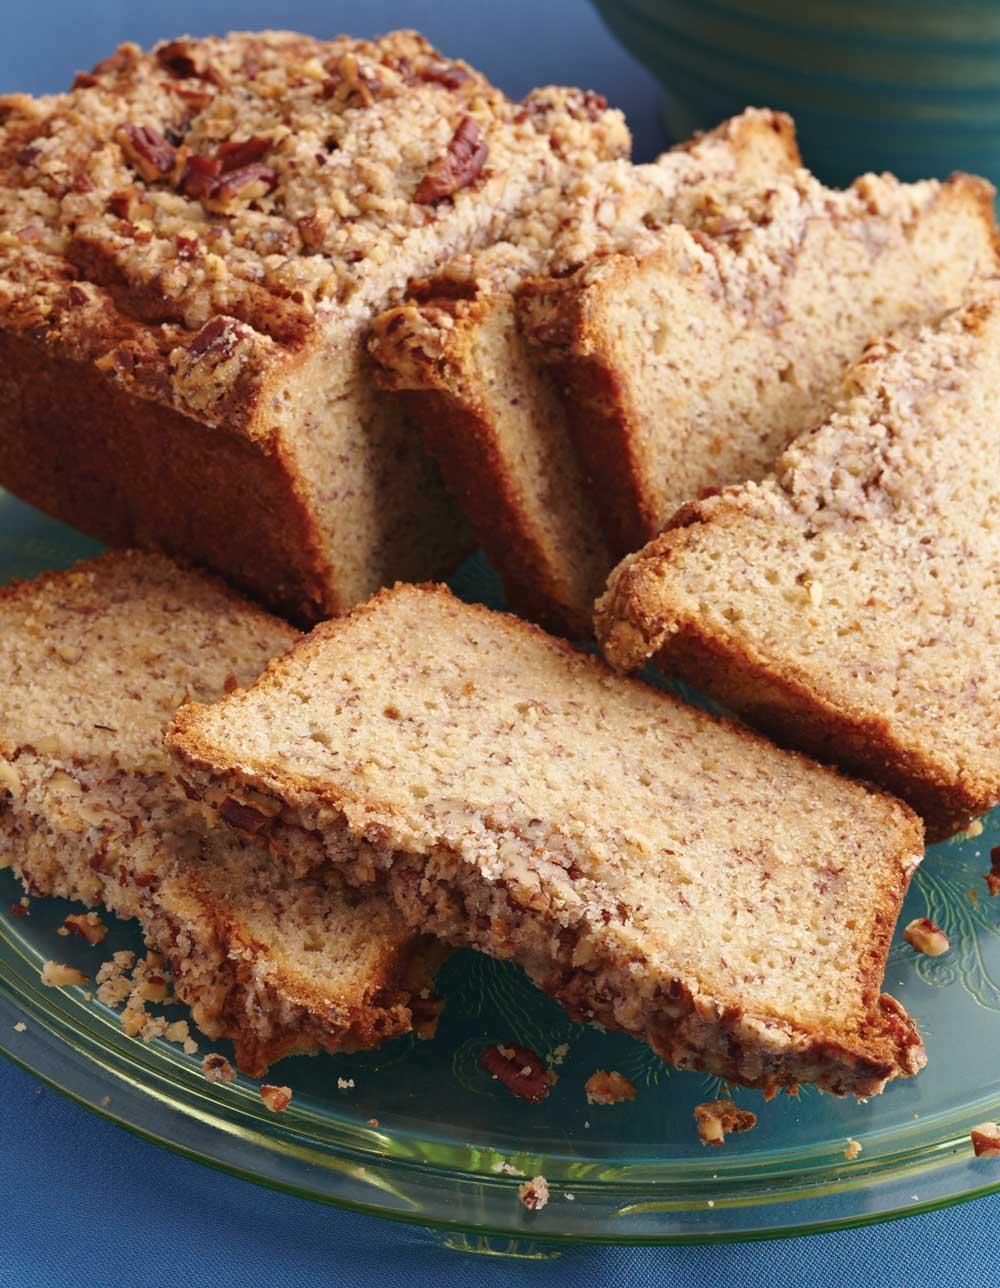 Recipe for Pecan Streusel Banana Bread